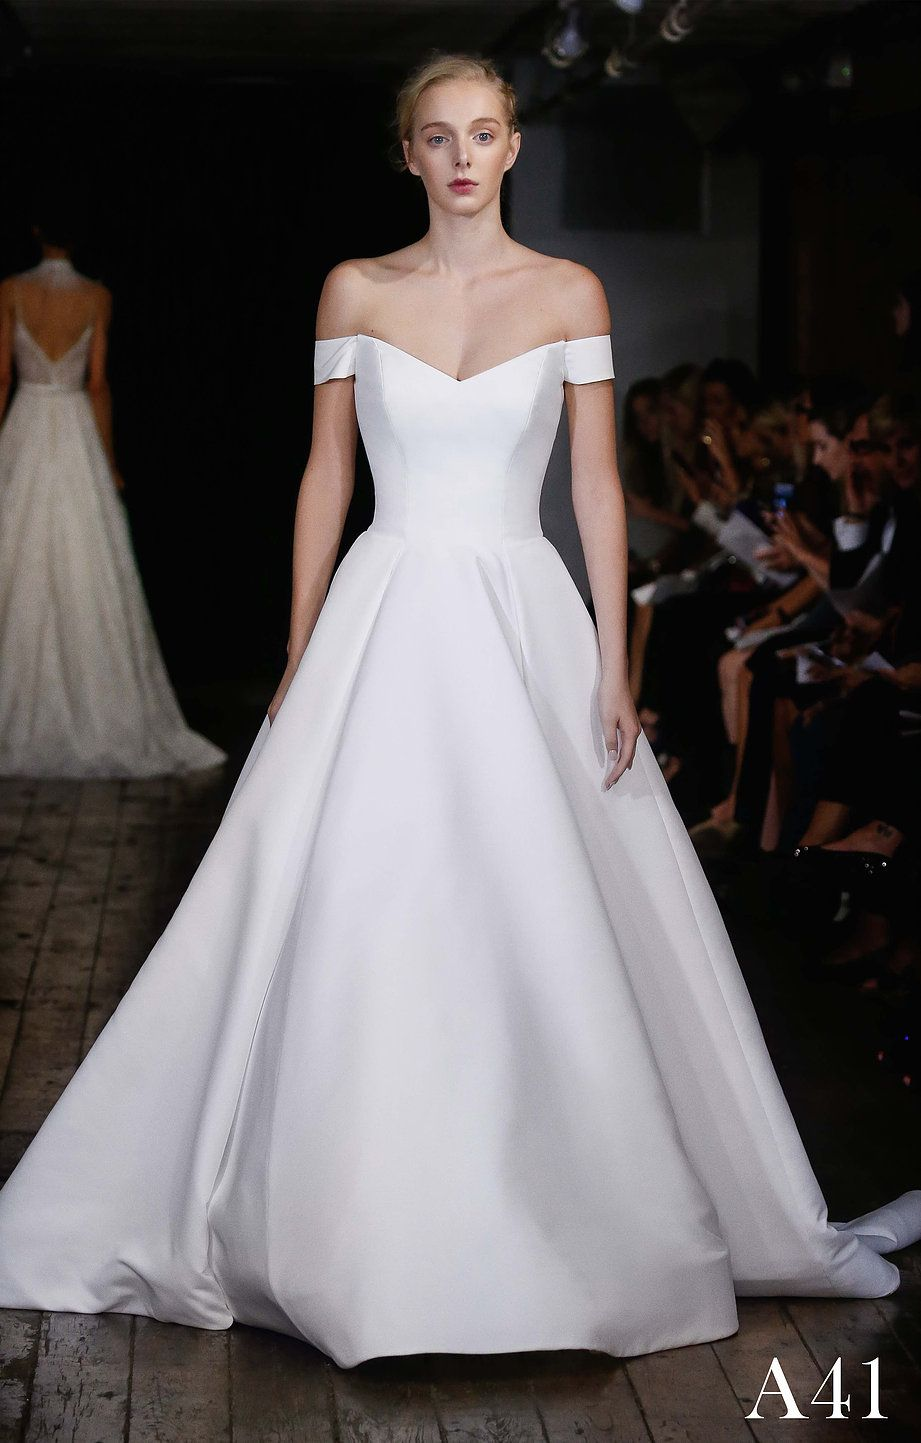 Alyne by Rita Vinieris chic simplistic bridal gowns made from only ...